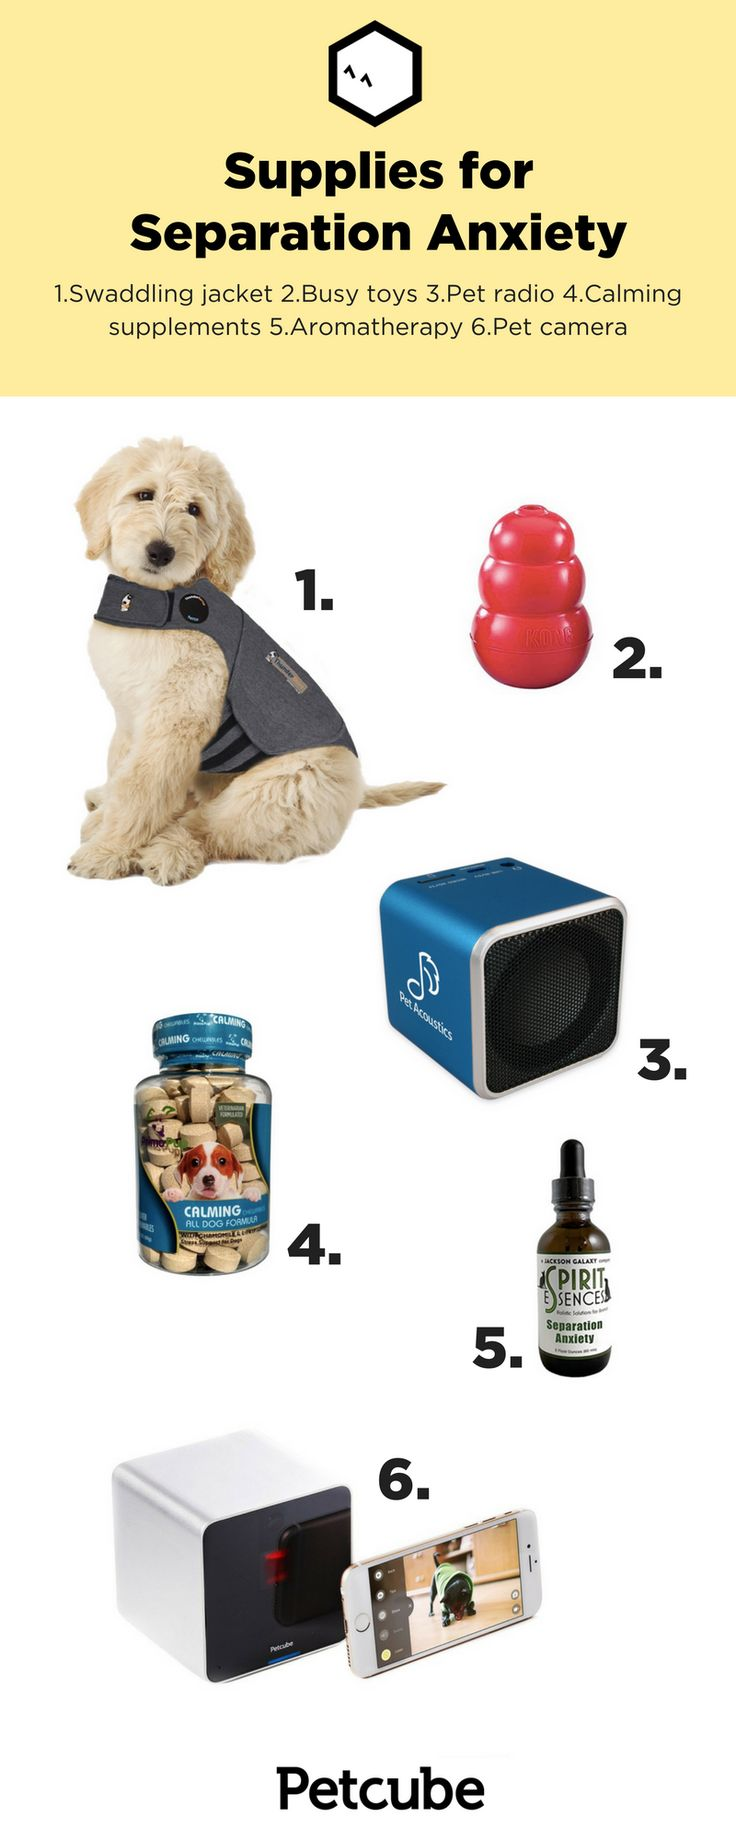 Separation anxiety can be one of the toughest things when it comes to having a dog. Here are supplies, ranging from aromatherapy to pet cams, that can help ease your dog's separation anxiety. #petcare